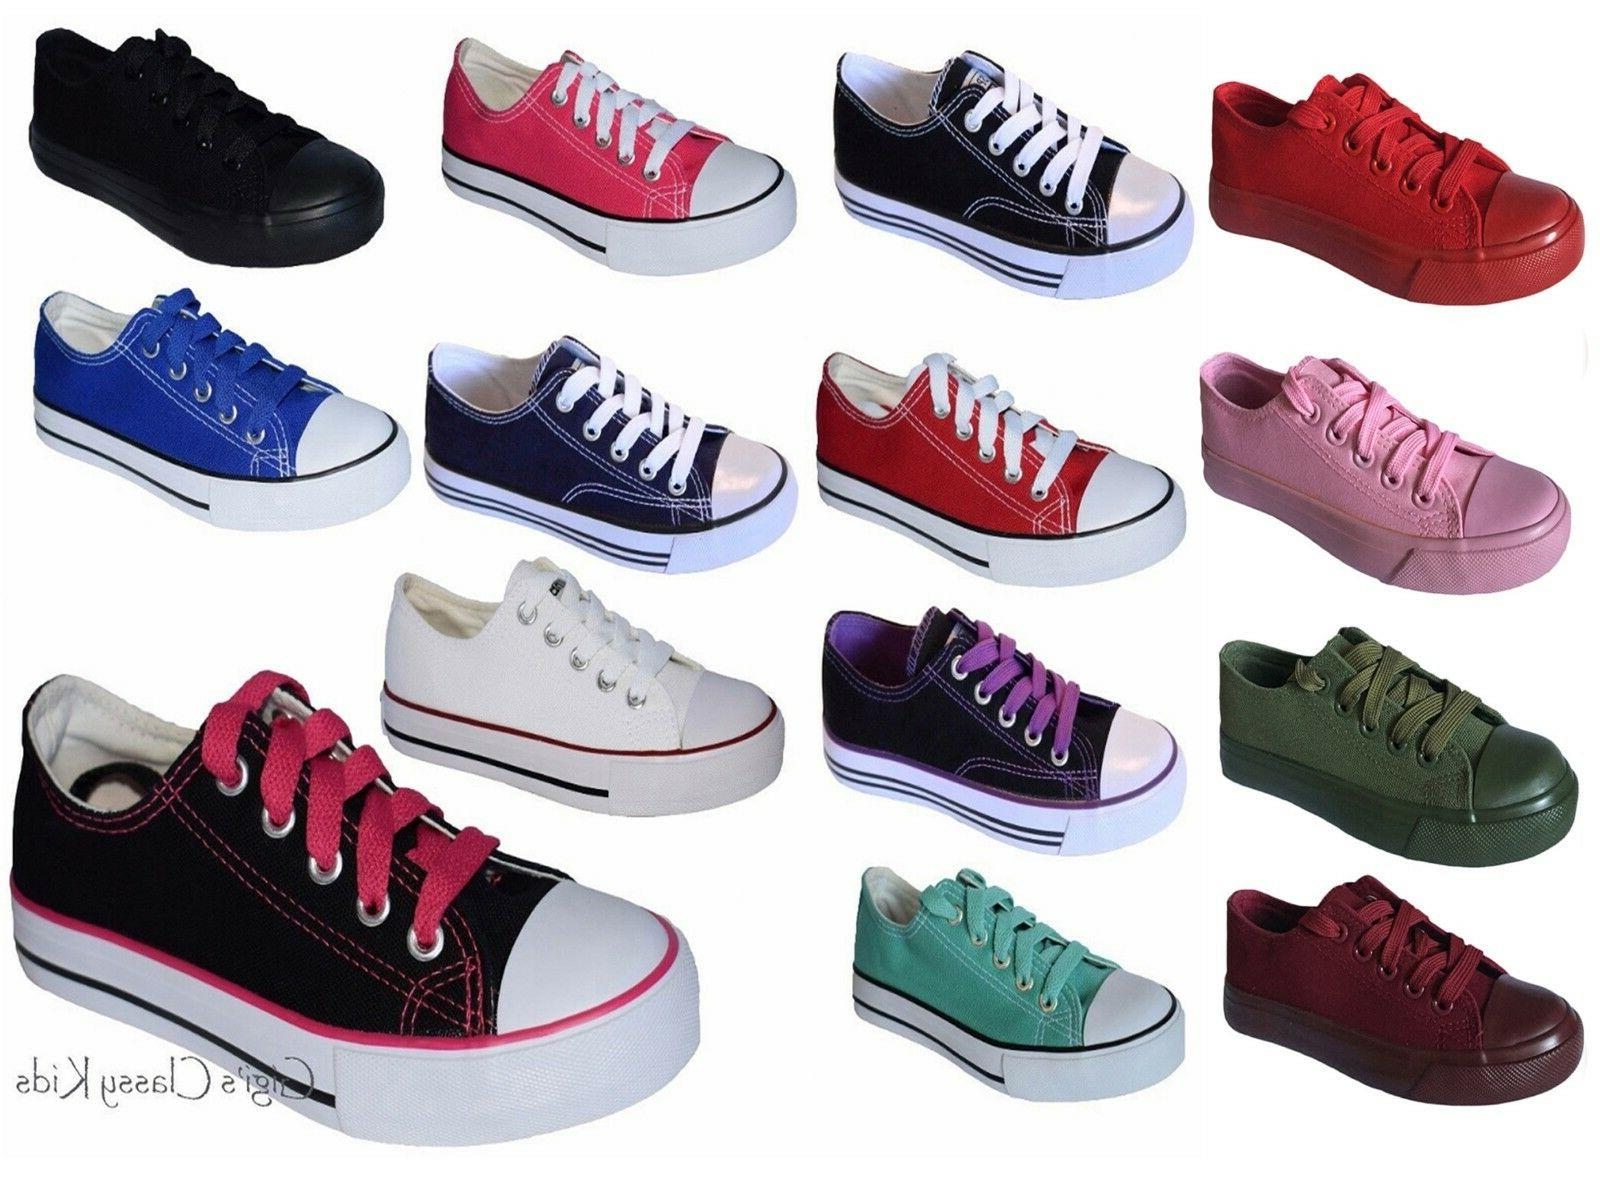 new boys girls youth classic low top